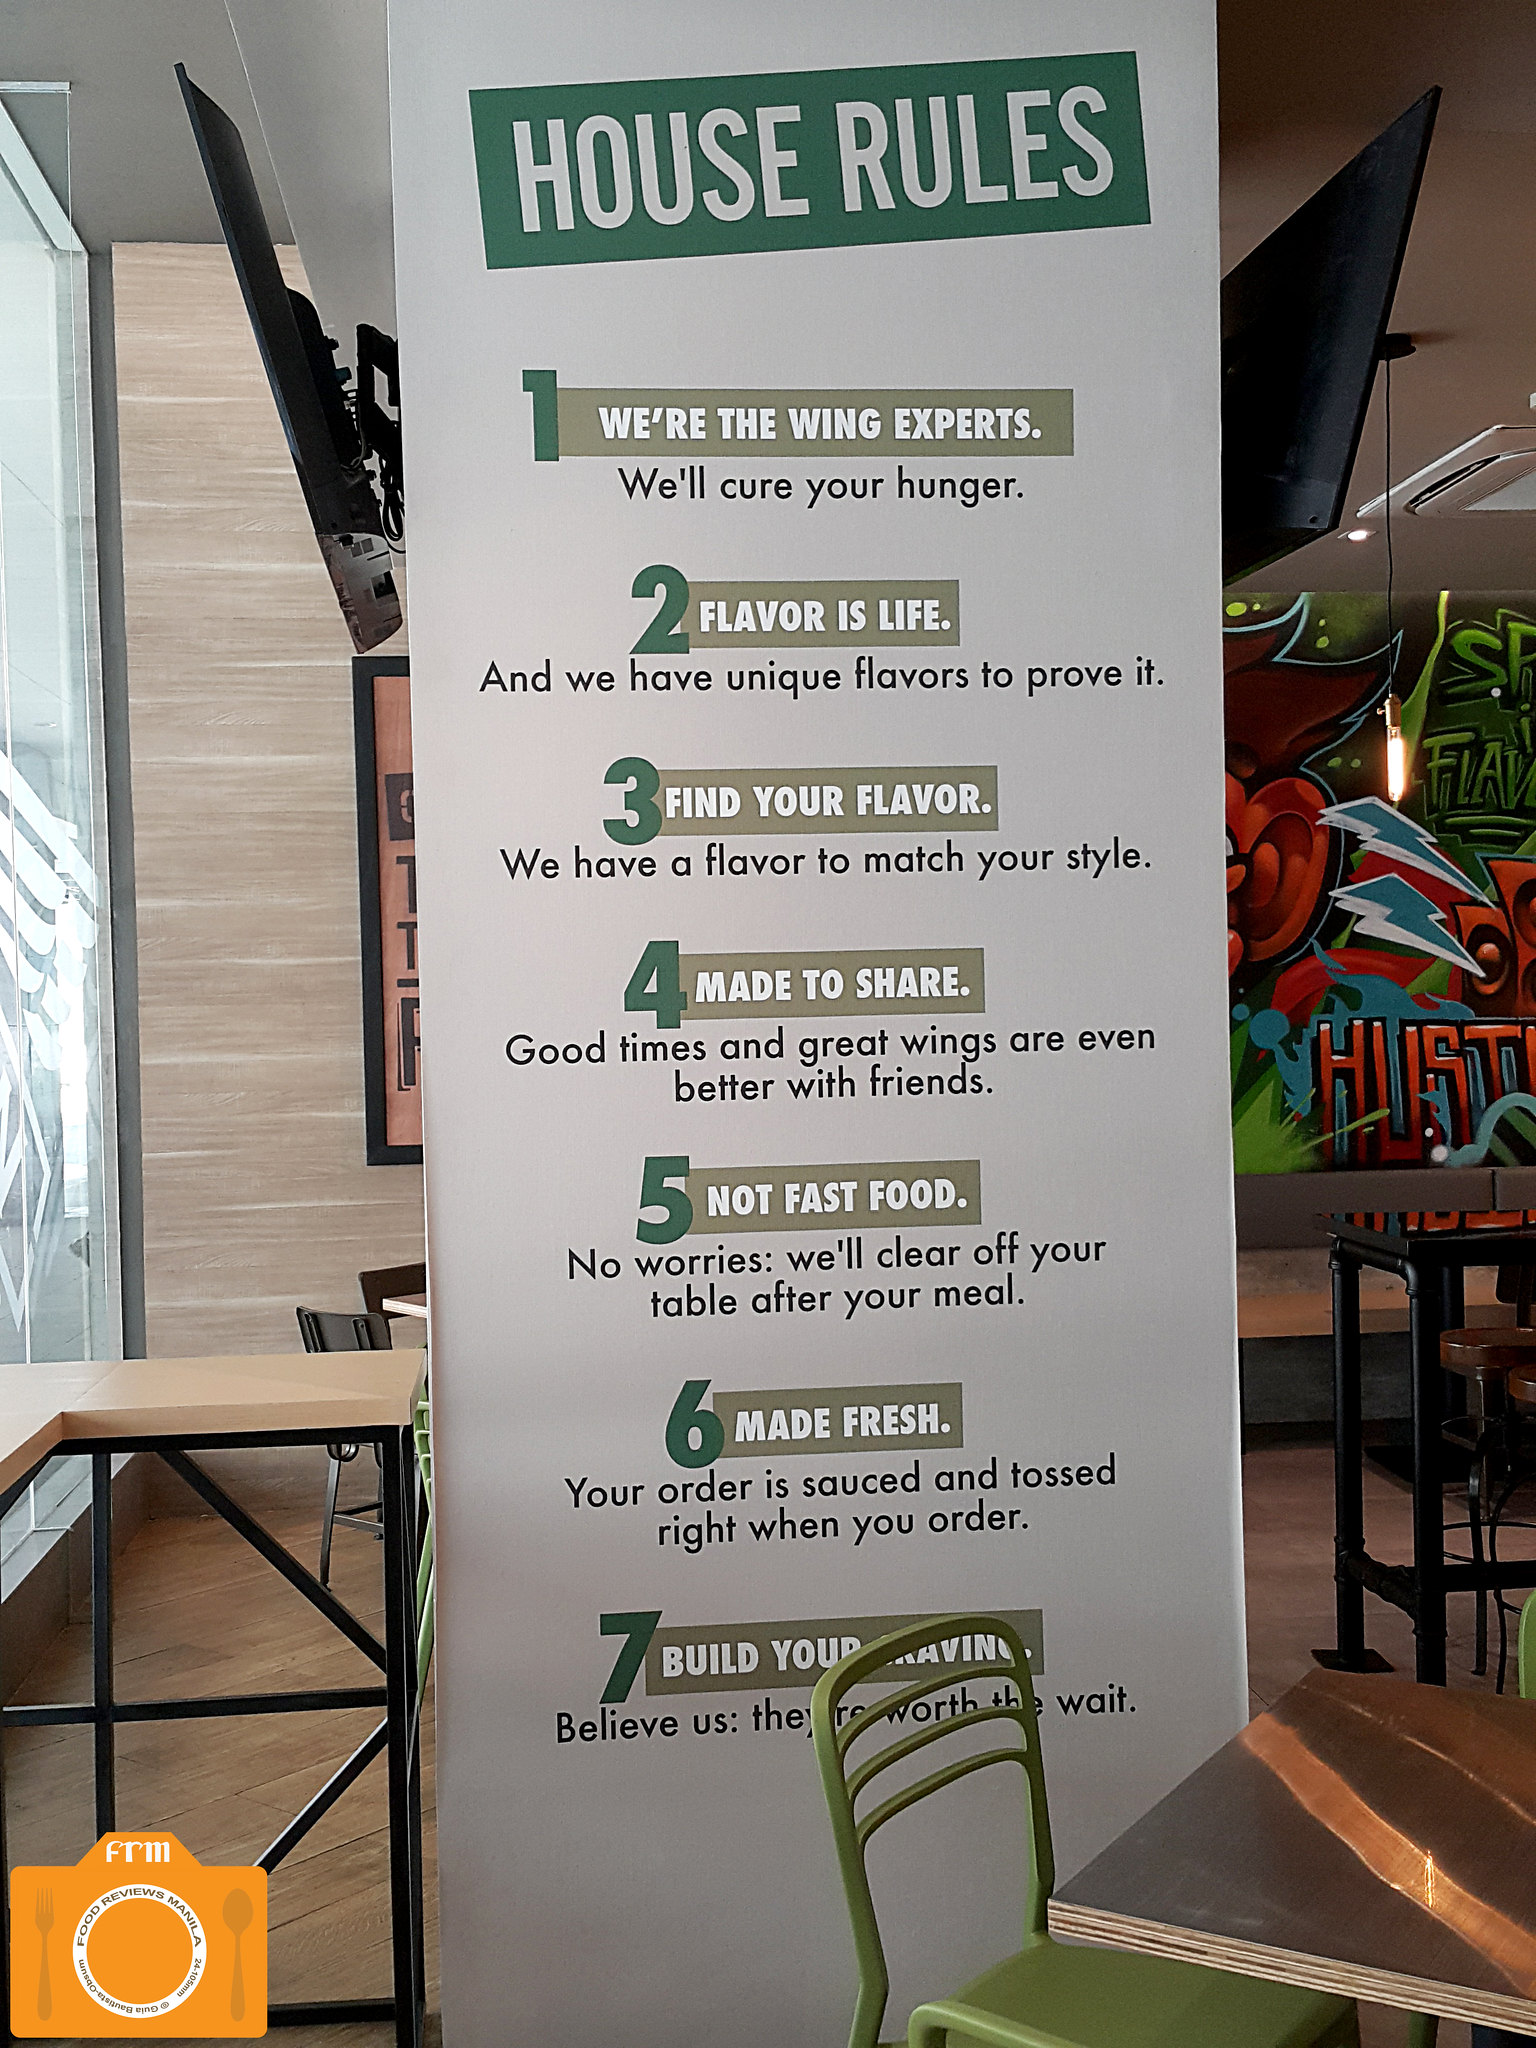 Wingstop house rules